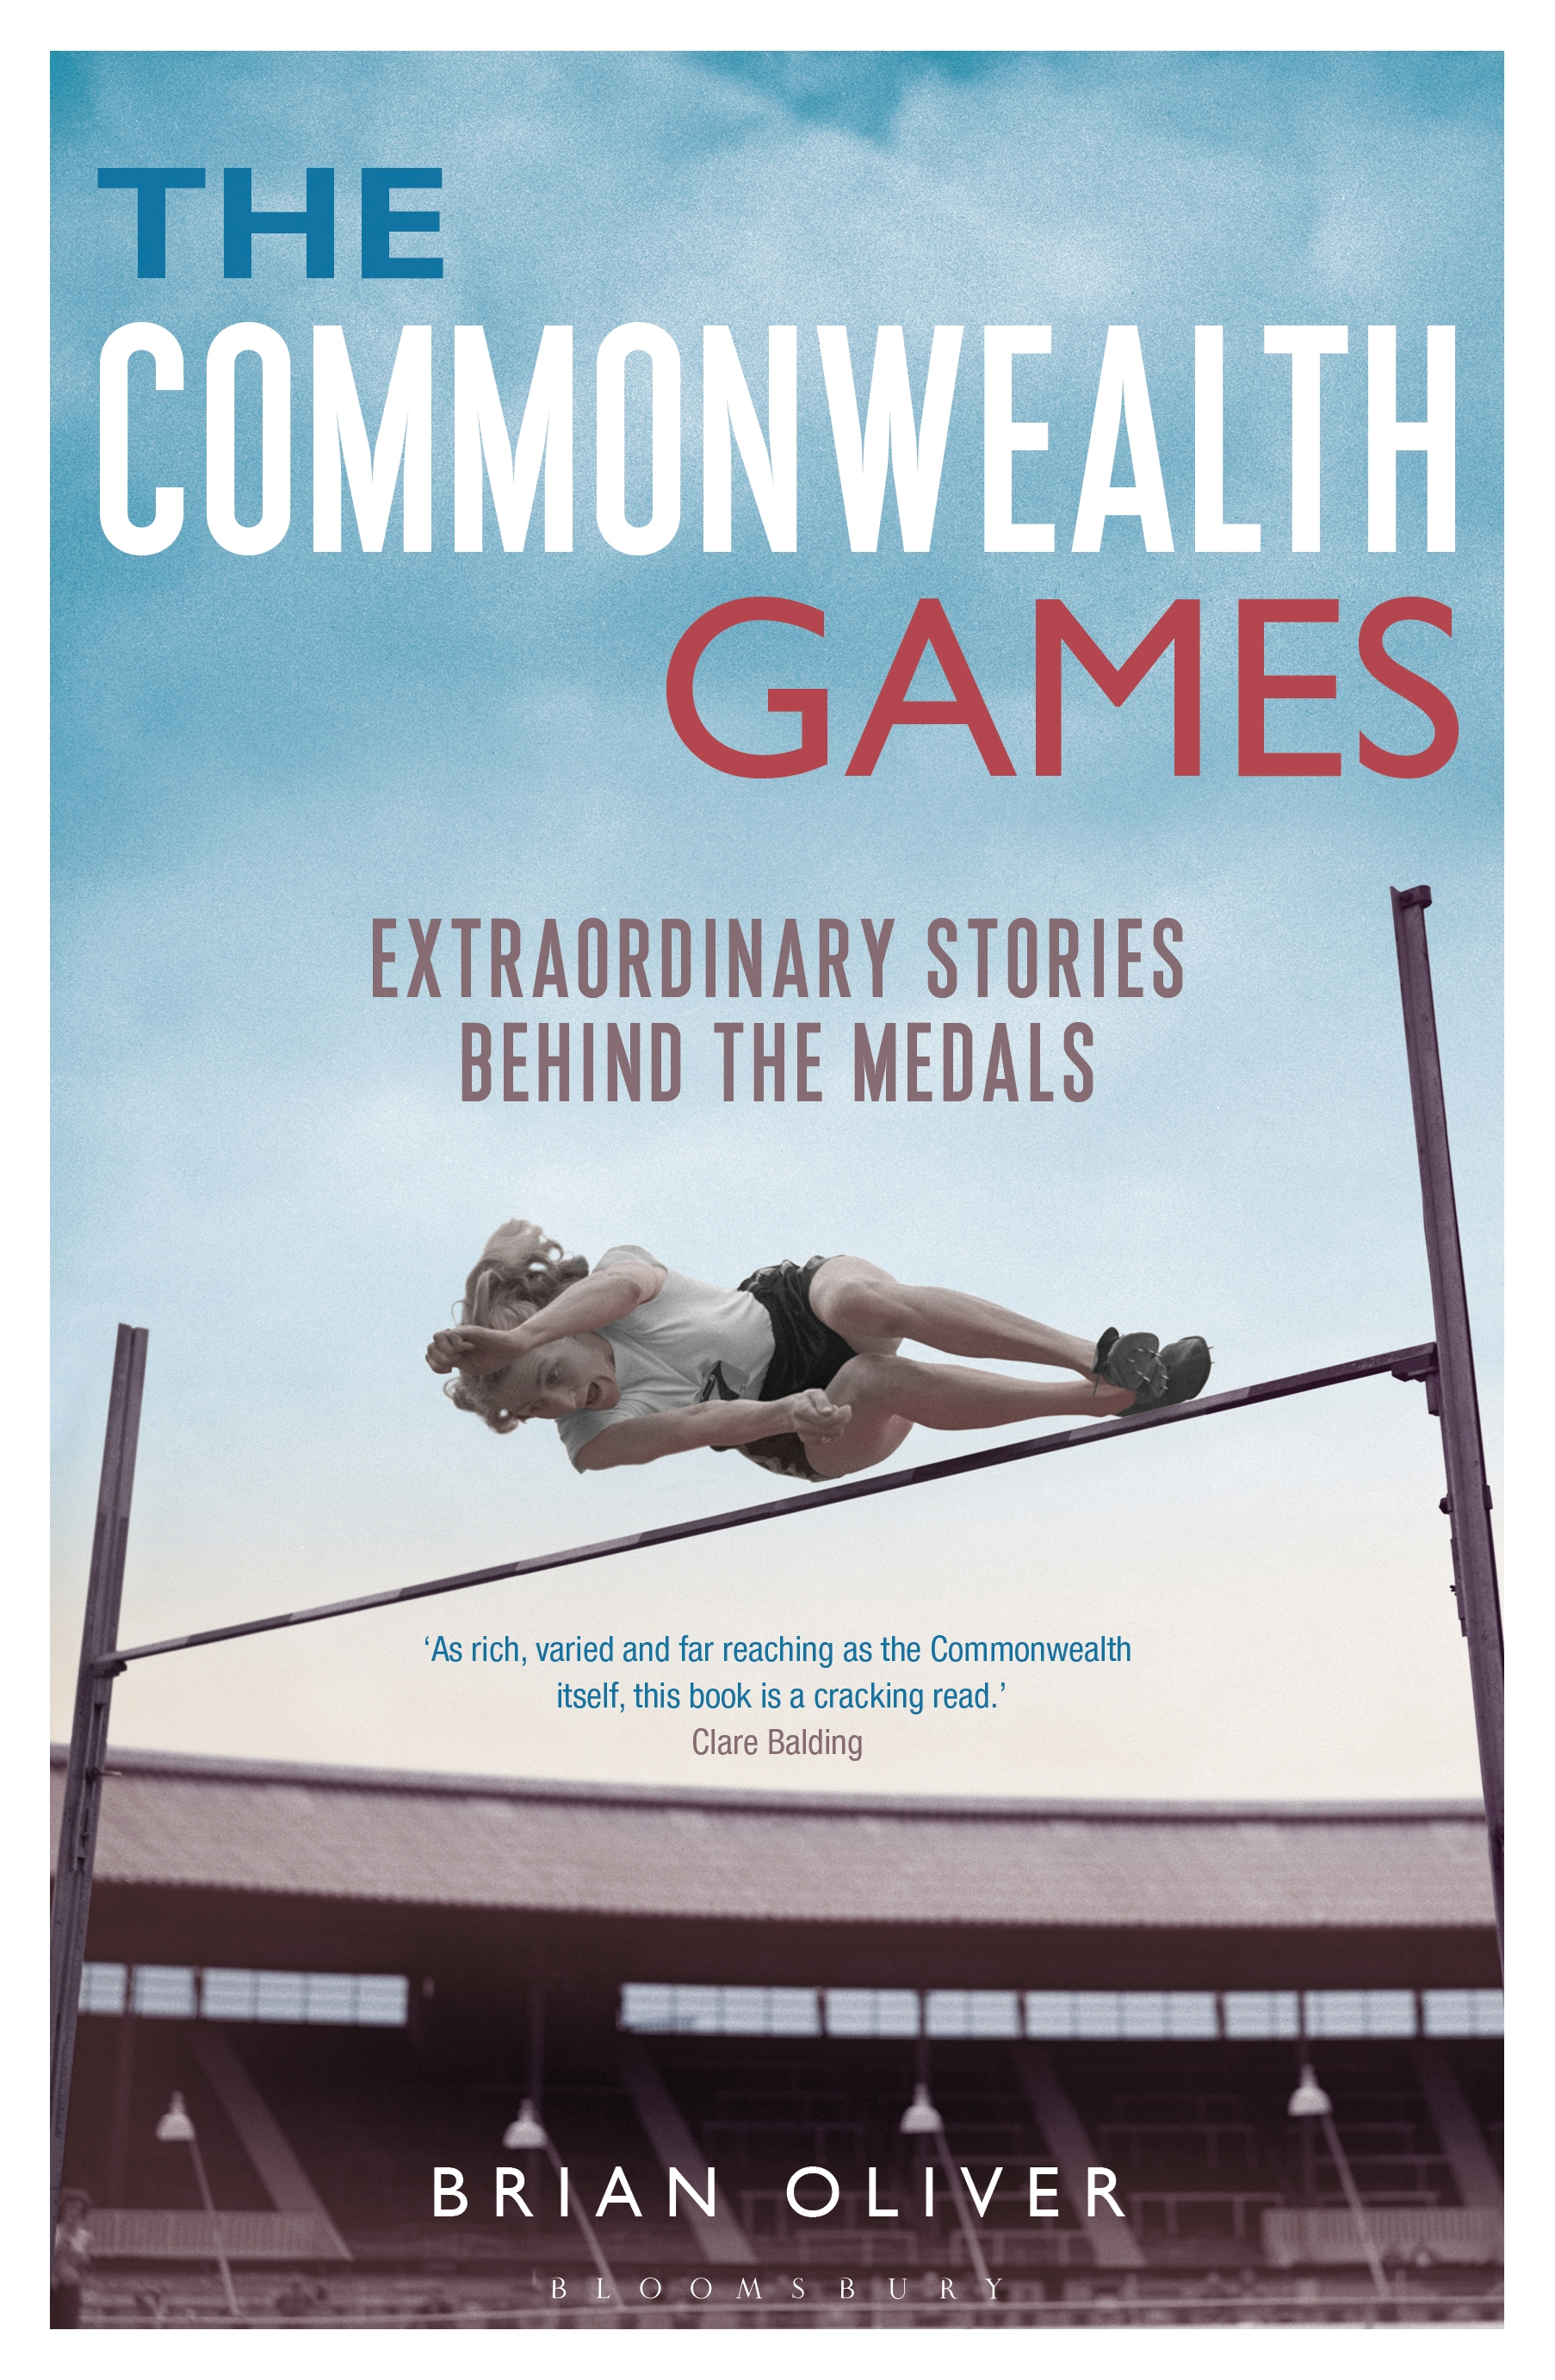 The Commonwealth Games Extraordinary Stories behind the Medals